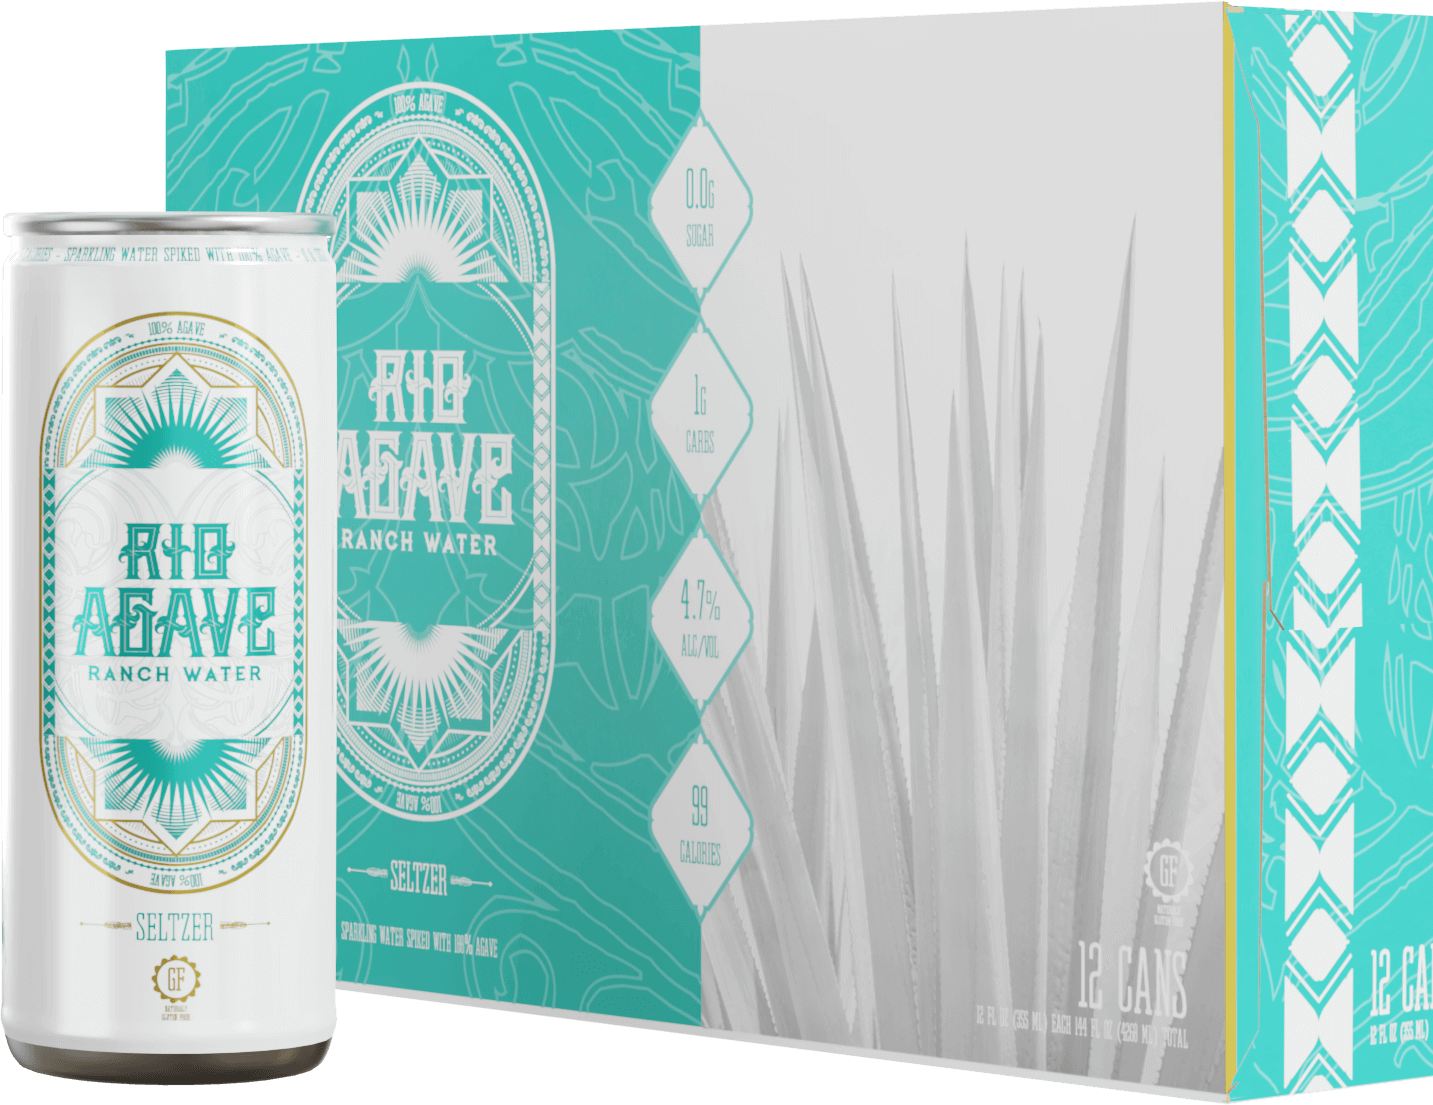 Rio Agave Ranch Water